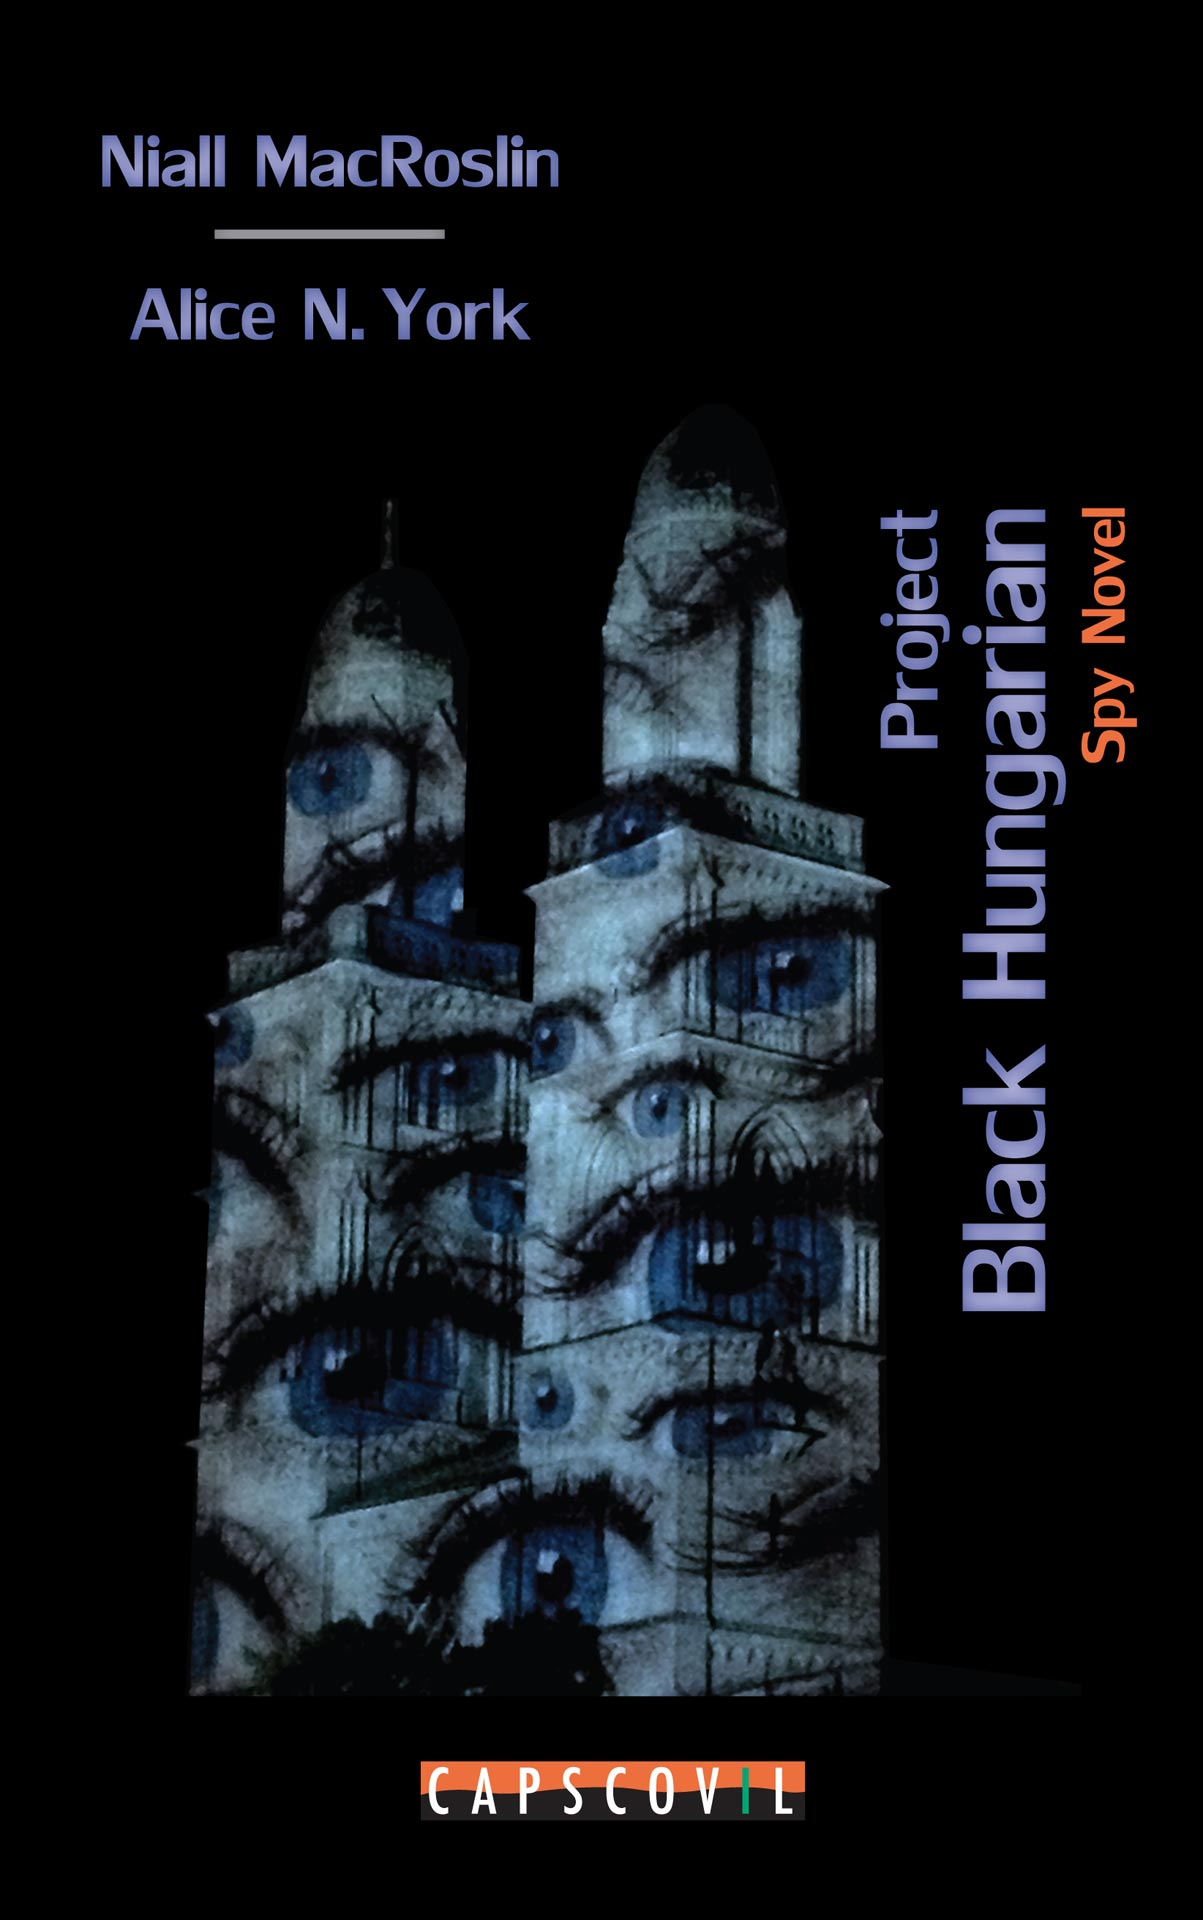 Project Black Hungarian - Spy Novel on IT security and electric vehicles with real role models and based on real events